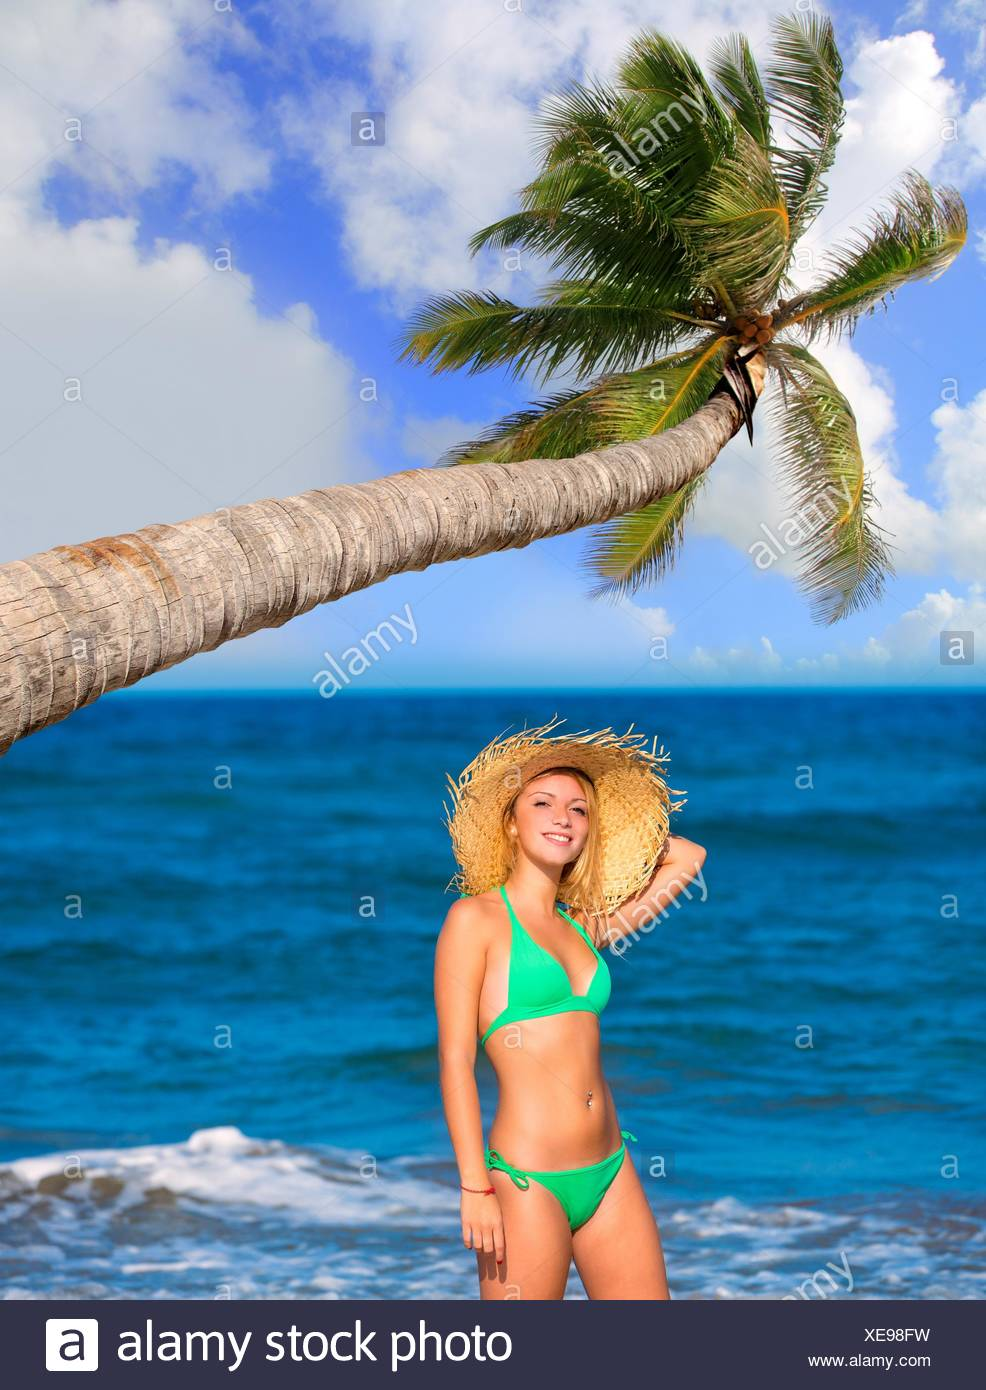 blond tourist girl in a tropical summer beach happy vacations Caribbean coconut palm tree. - Stock Image